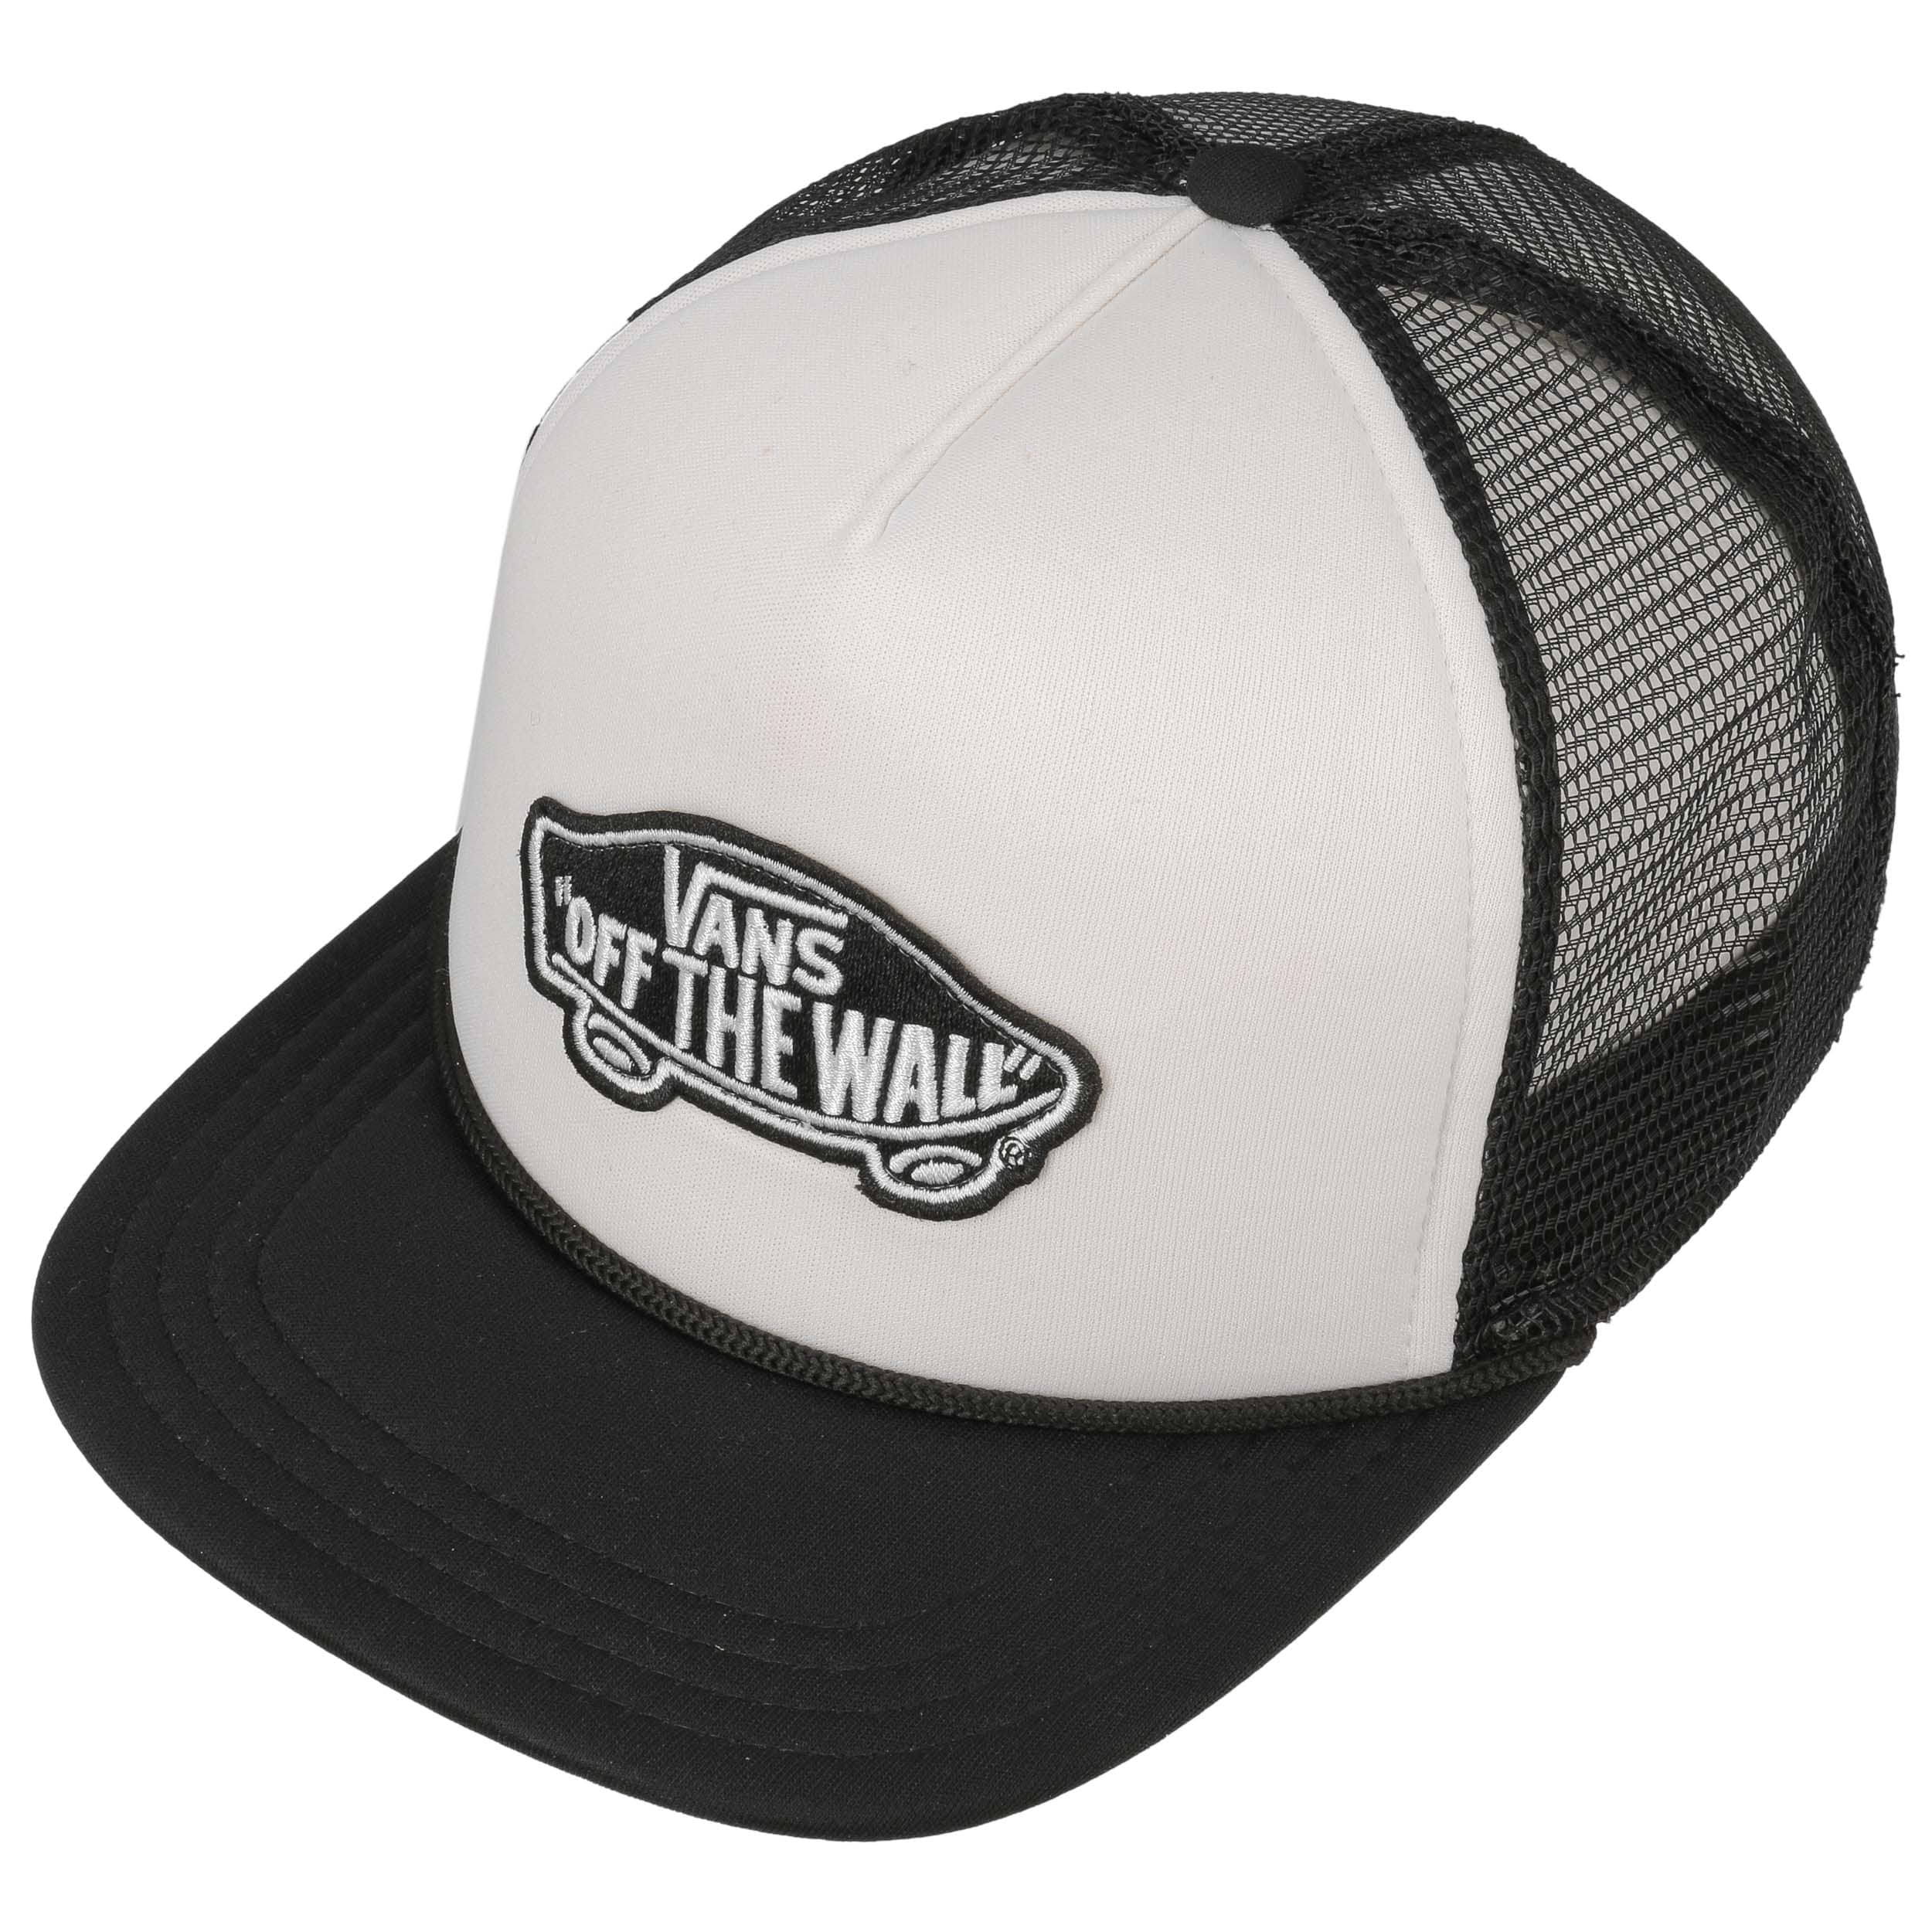 893fdb5a2bc ... Classic Patch Trucker Cap by Vans - black 1 ...